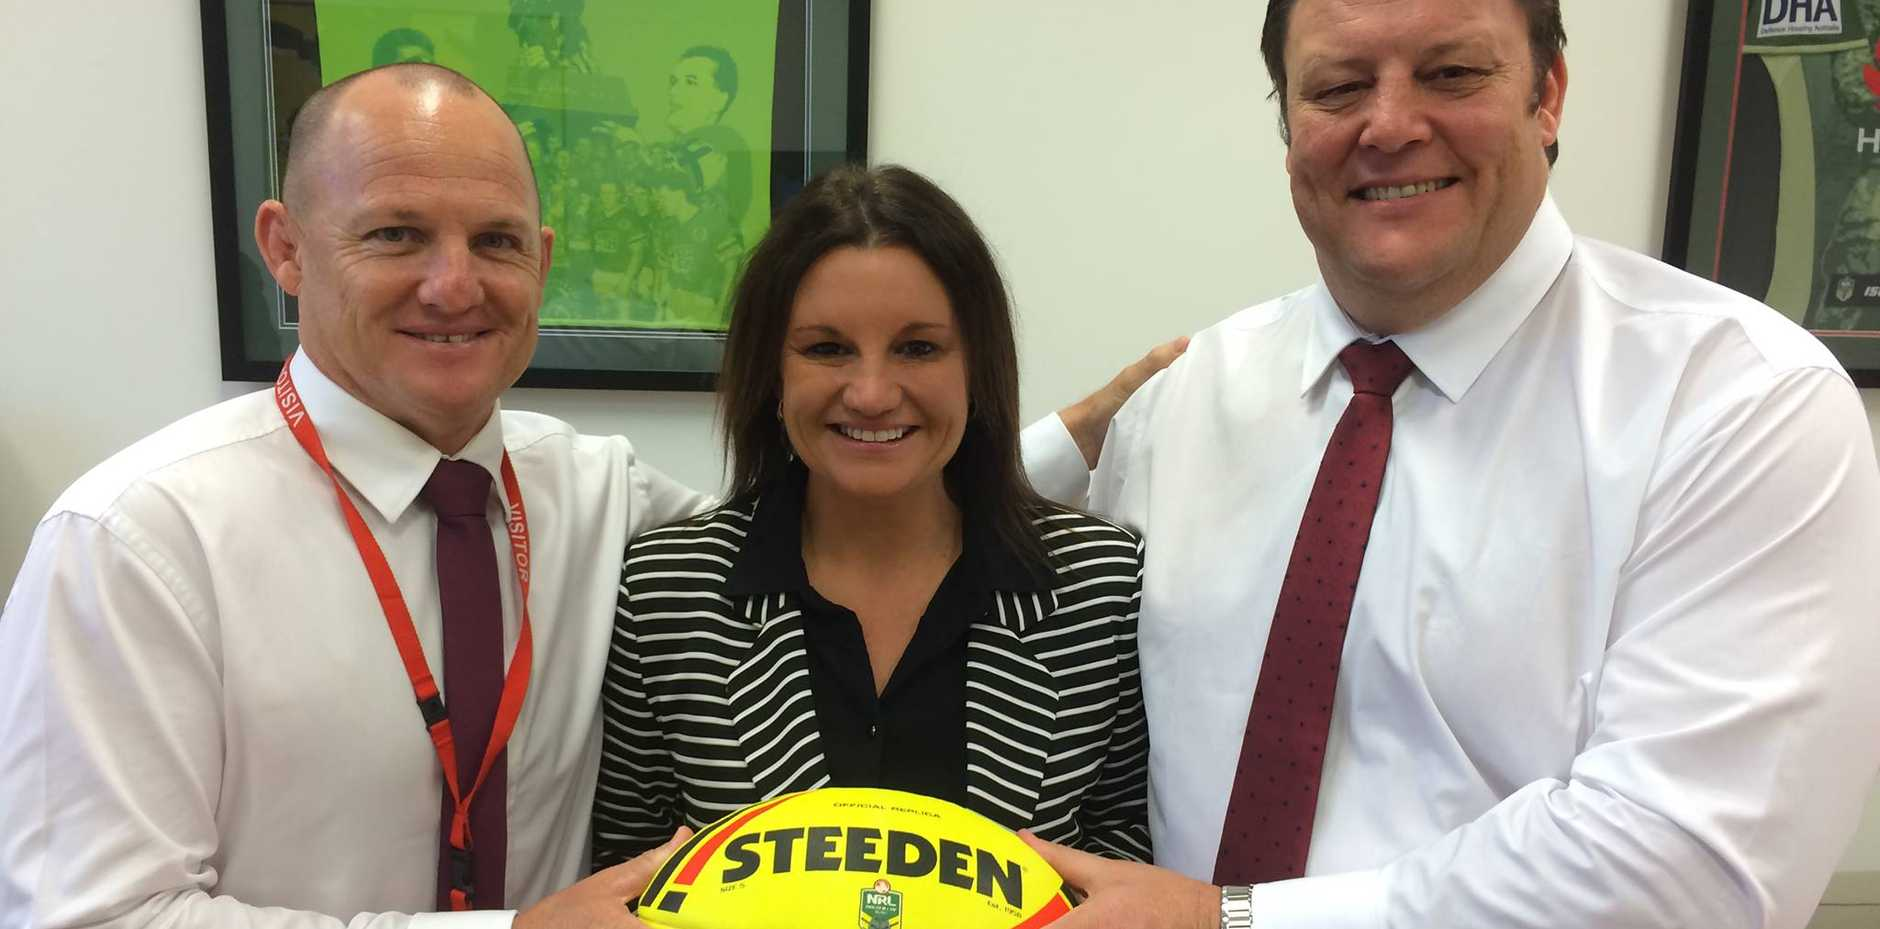 'Everyone wants to be part of the Glenn Lazarus Team and play with our balls...even Jacqui!'